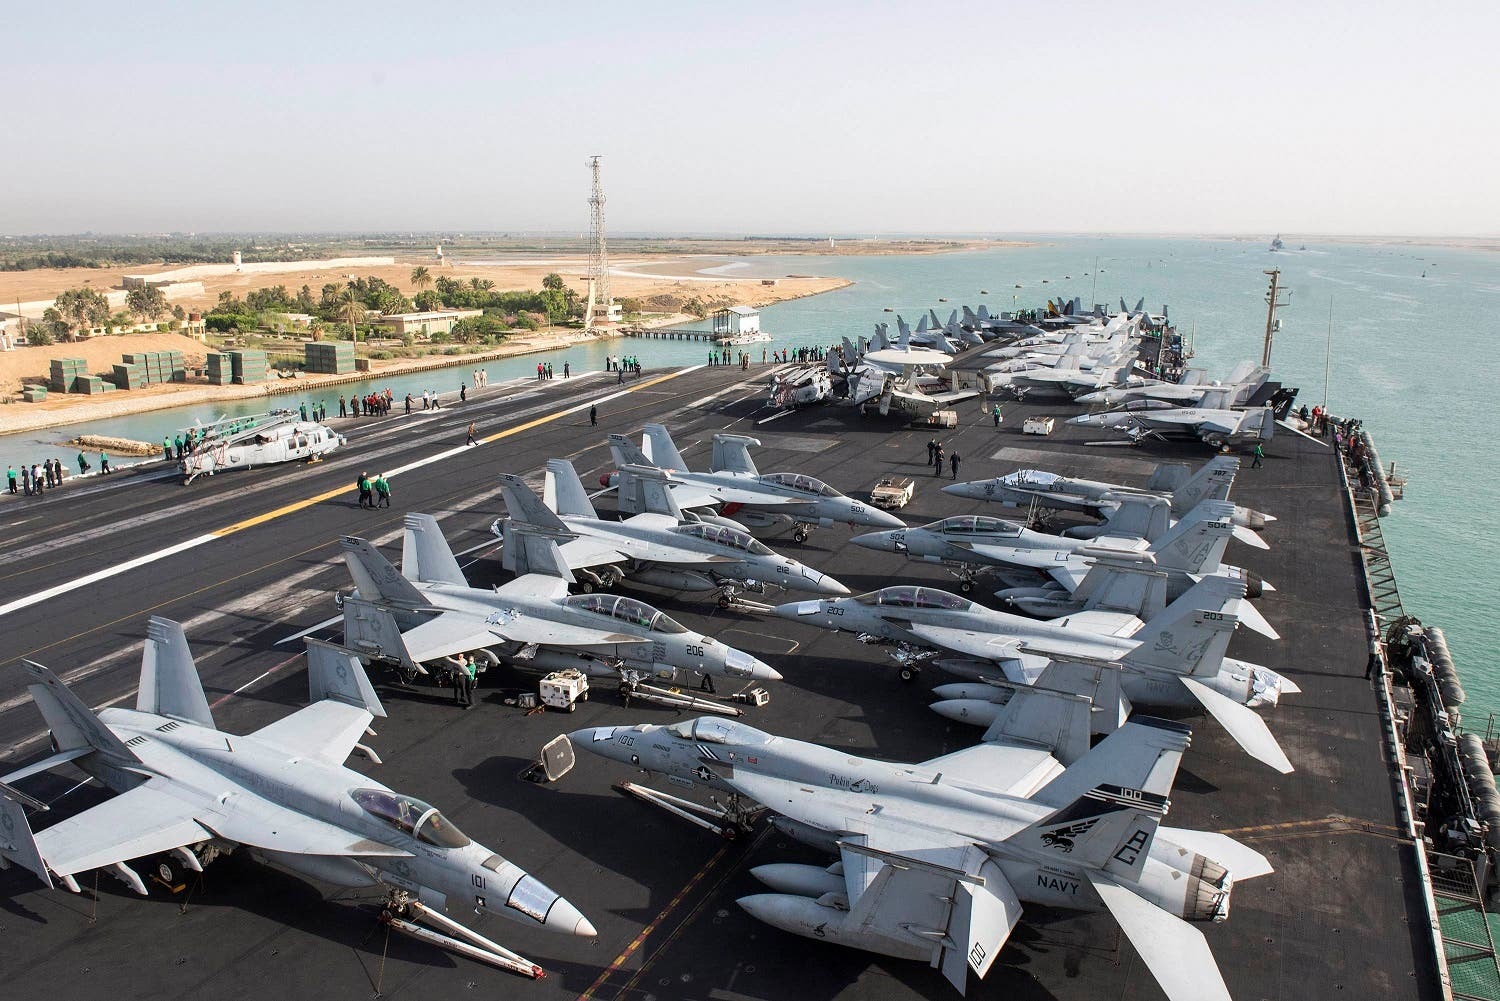 The US Navy aircraft carrier USS Harry S. Truman transits the Suez Canal, Egypt towards the Mediterranean Sea in a photo released by the US Navy June 2, 2016. U.S. fighter jets on Friday launched strikes against Islamic State from the USS Harry S. Truman aircraft carrier (Reuters)